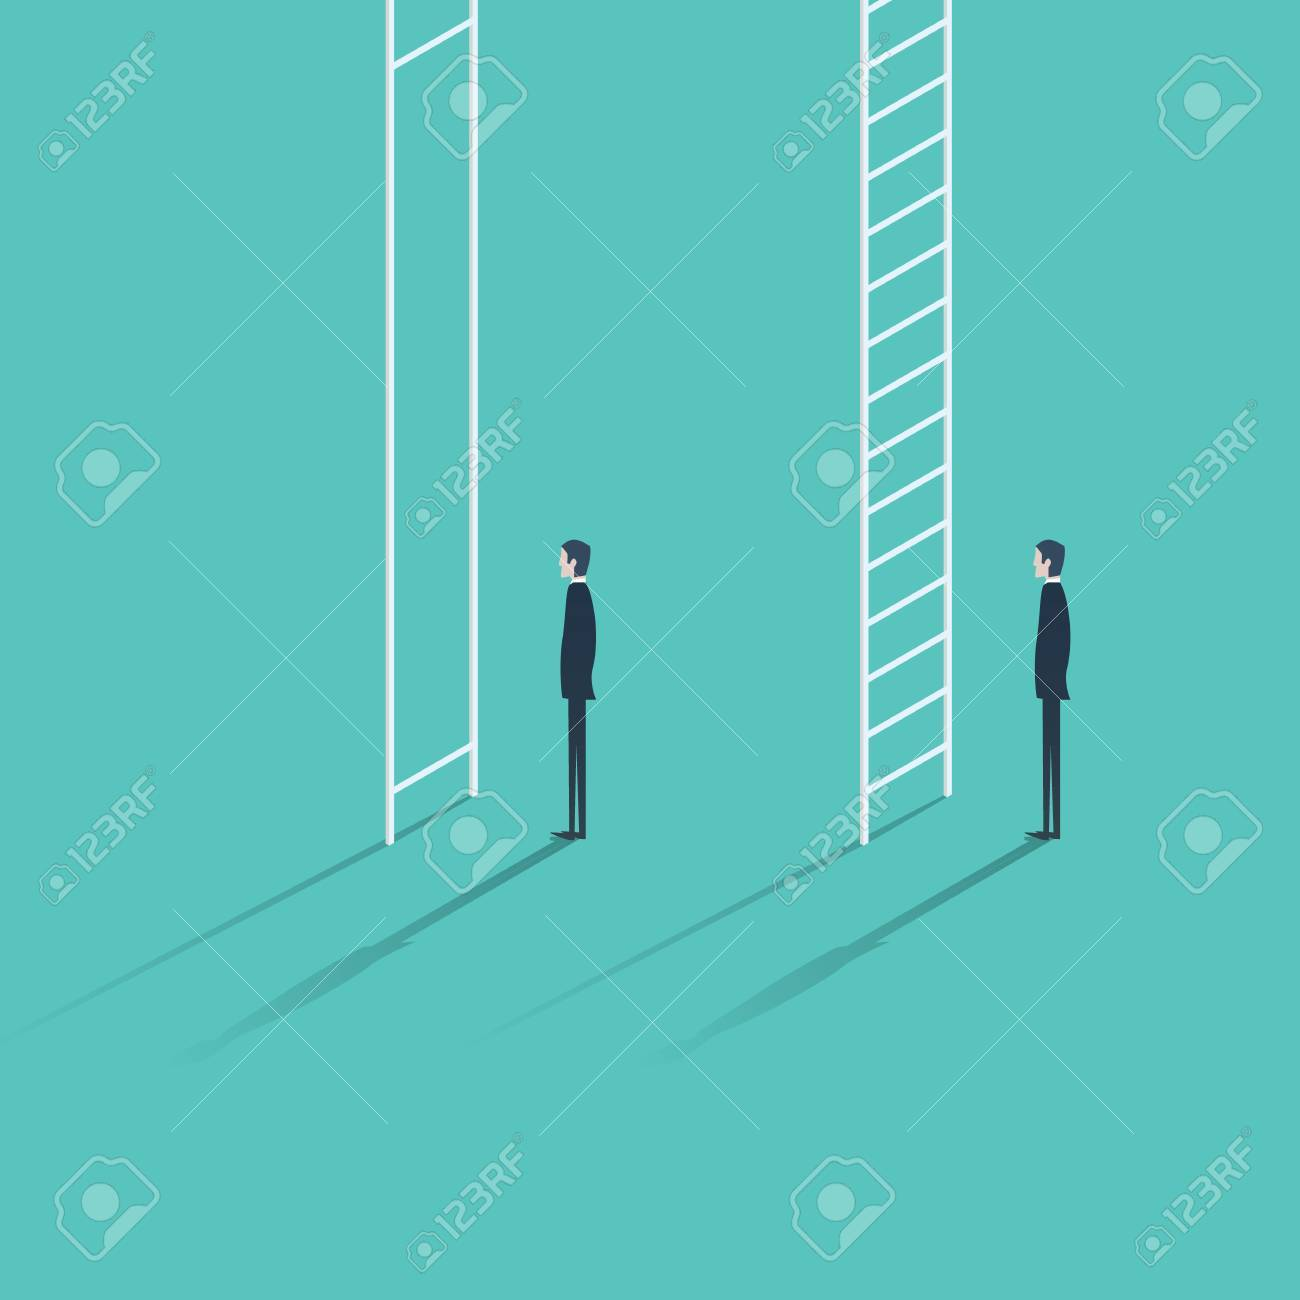 inequality in career promotion concept two businessmen standing inequality in career promotion concept two businessmen standing and climbing corporate ladders business concept